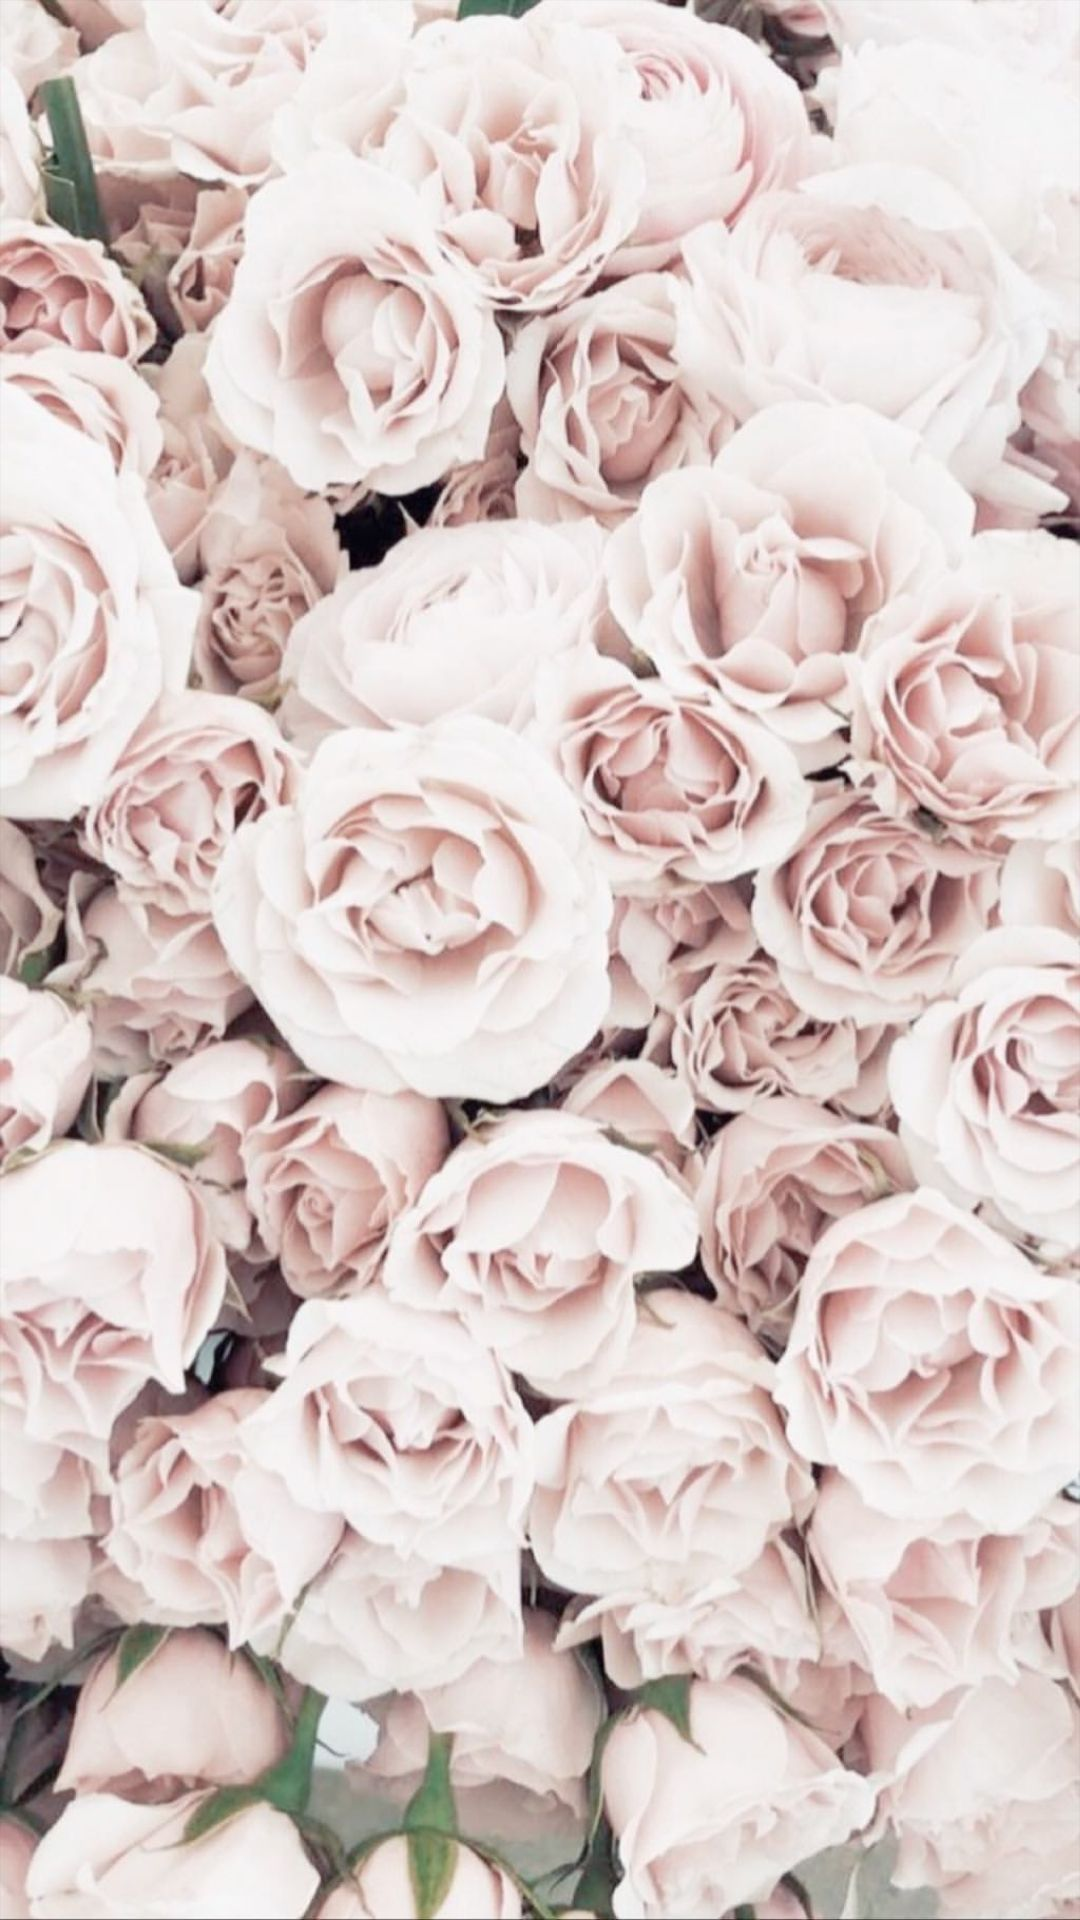 Aesthetic Pink And White Wallpaper Download Flower Aesthetic Rose Gold Marble Wallpaper Flower Wallpaper